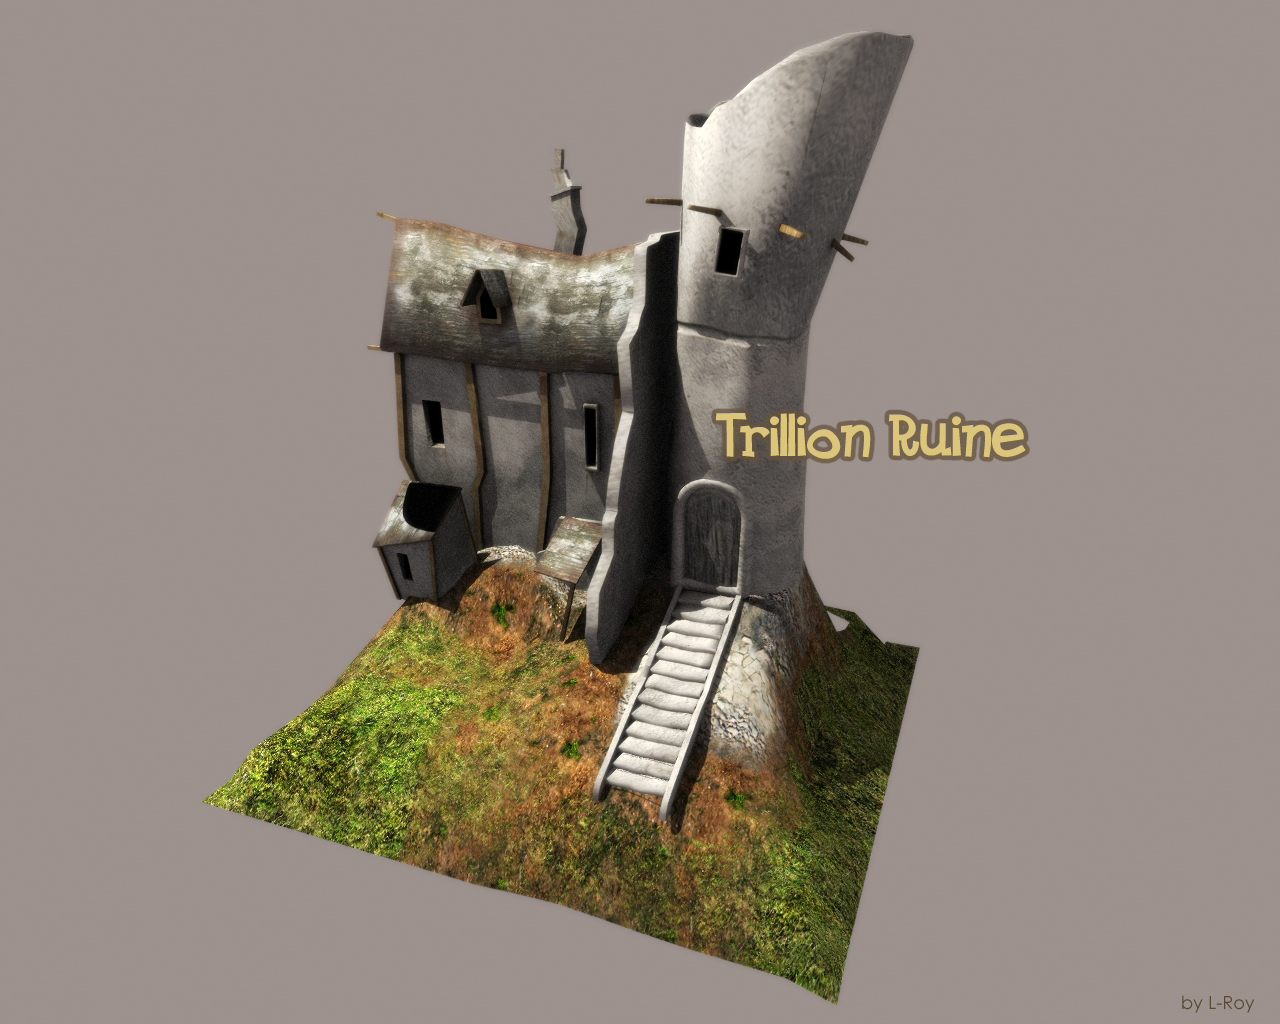 2005_12_Trillion_Ruine02_beauty.jpg